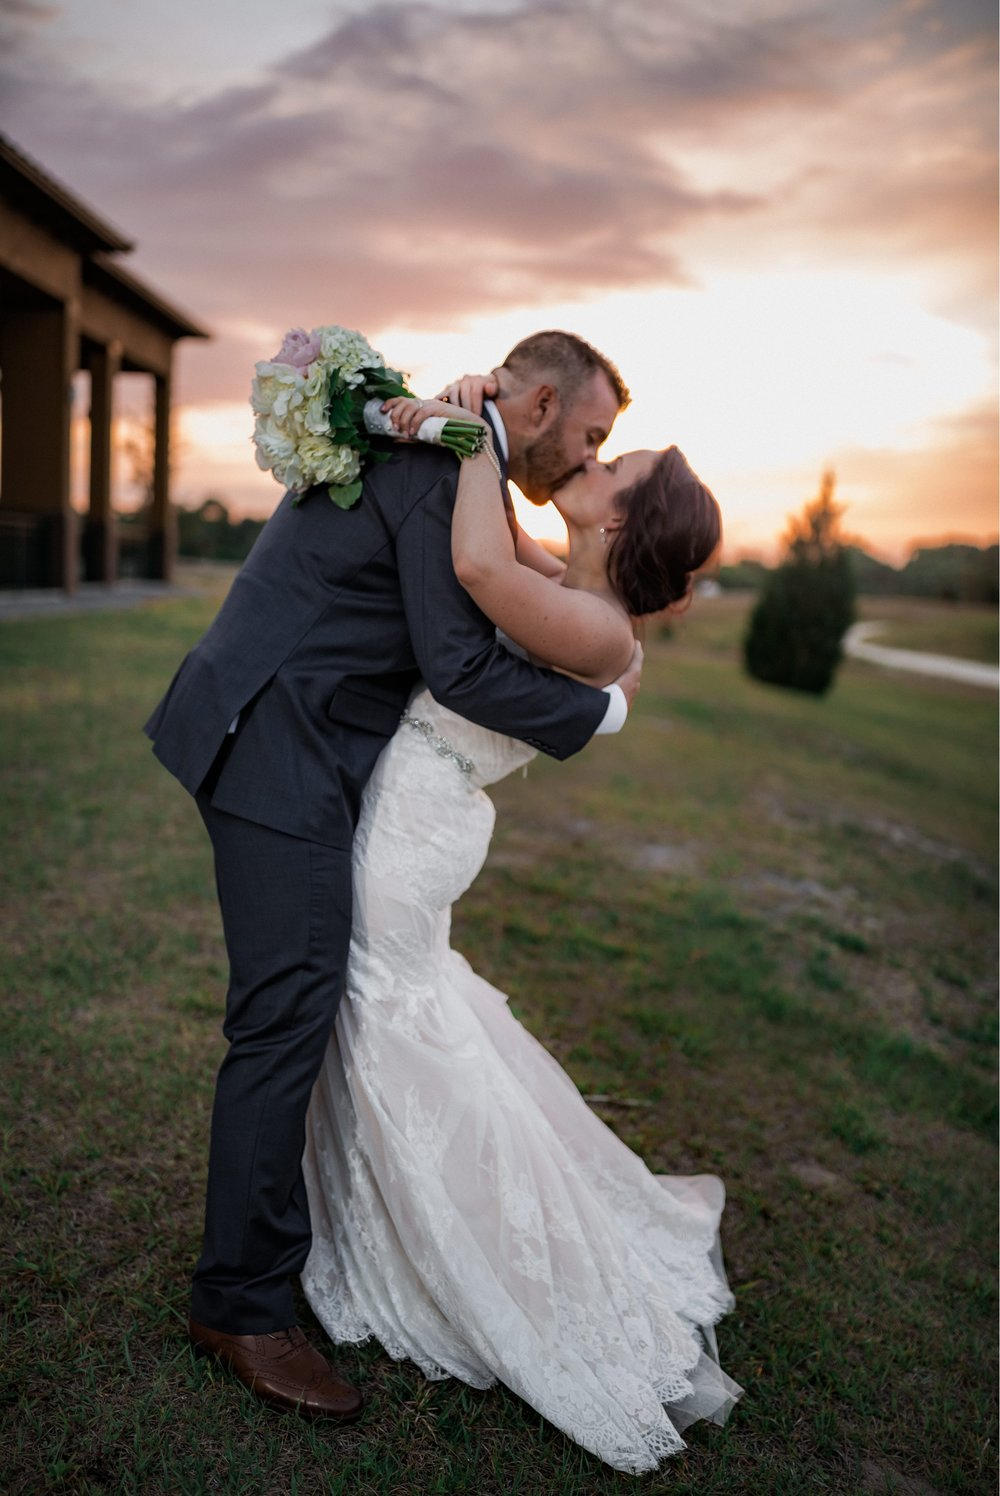 Romantic Pink Spring Wedding - Katie + Joe by Orlando Wedding Photographer Shaina DeCiryan 116.jpg